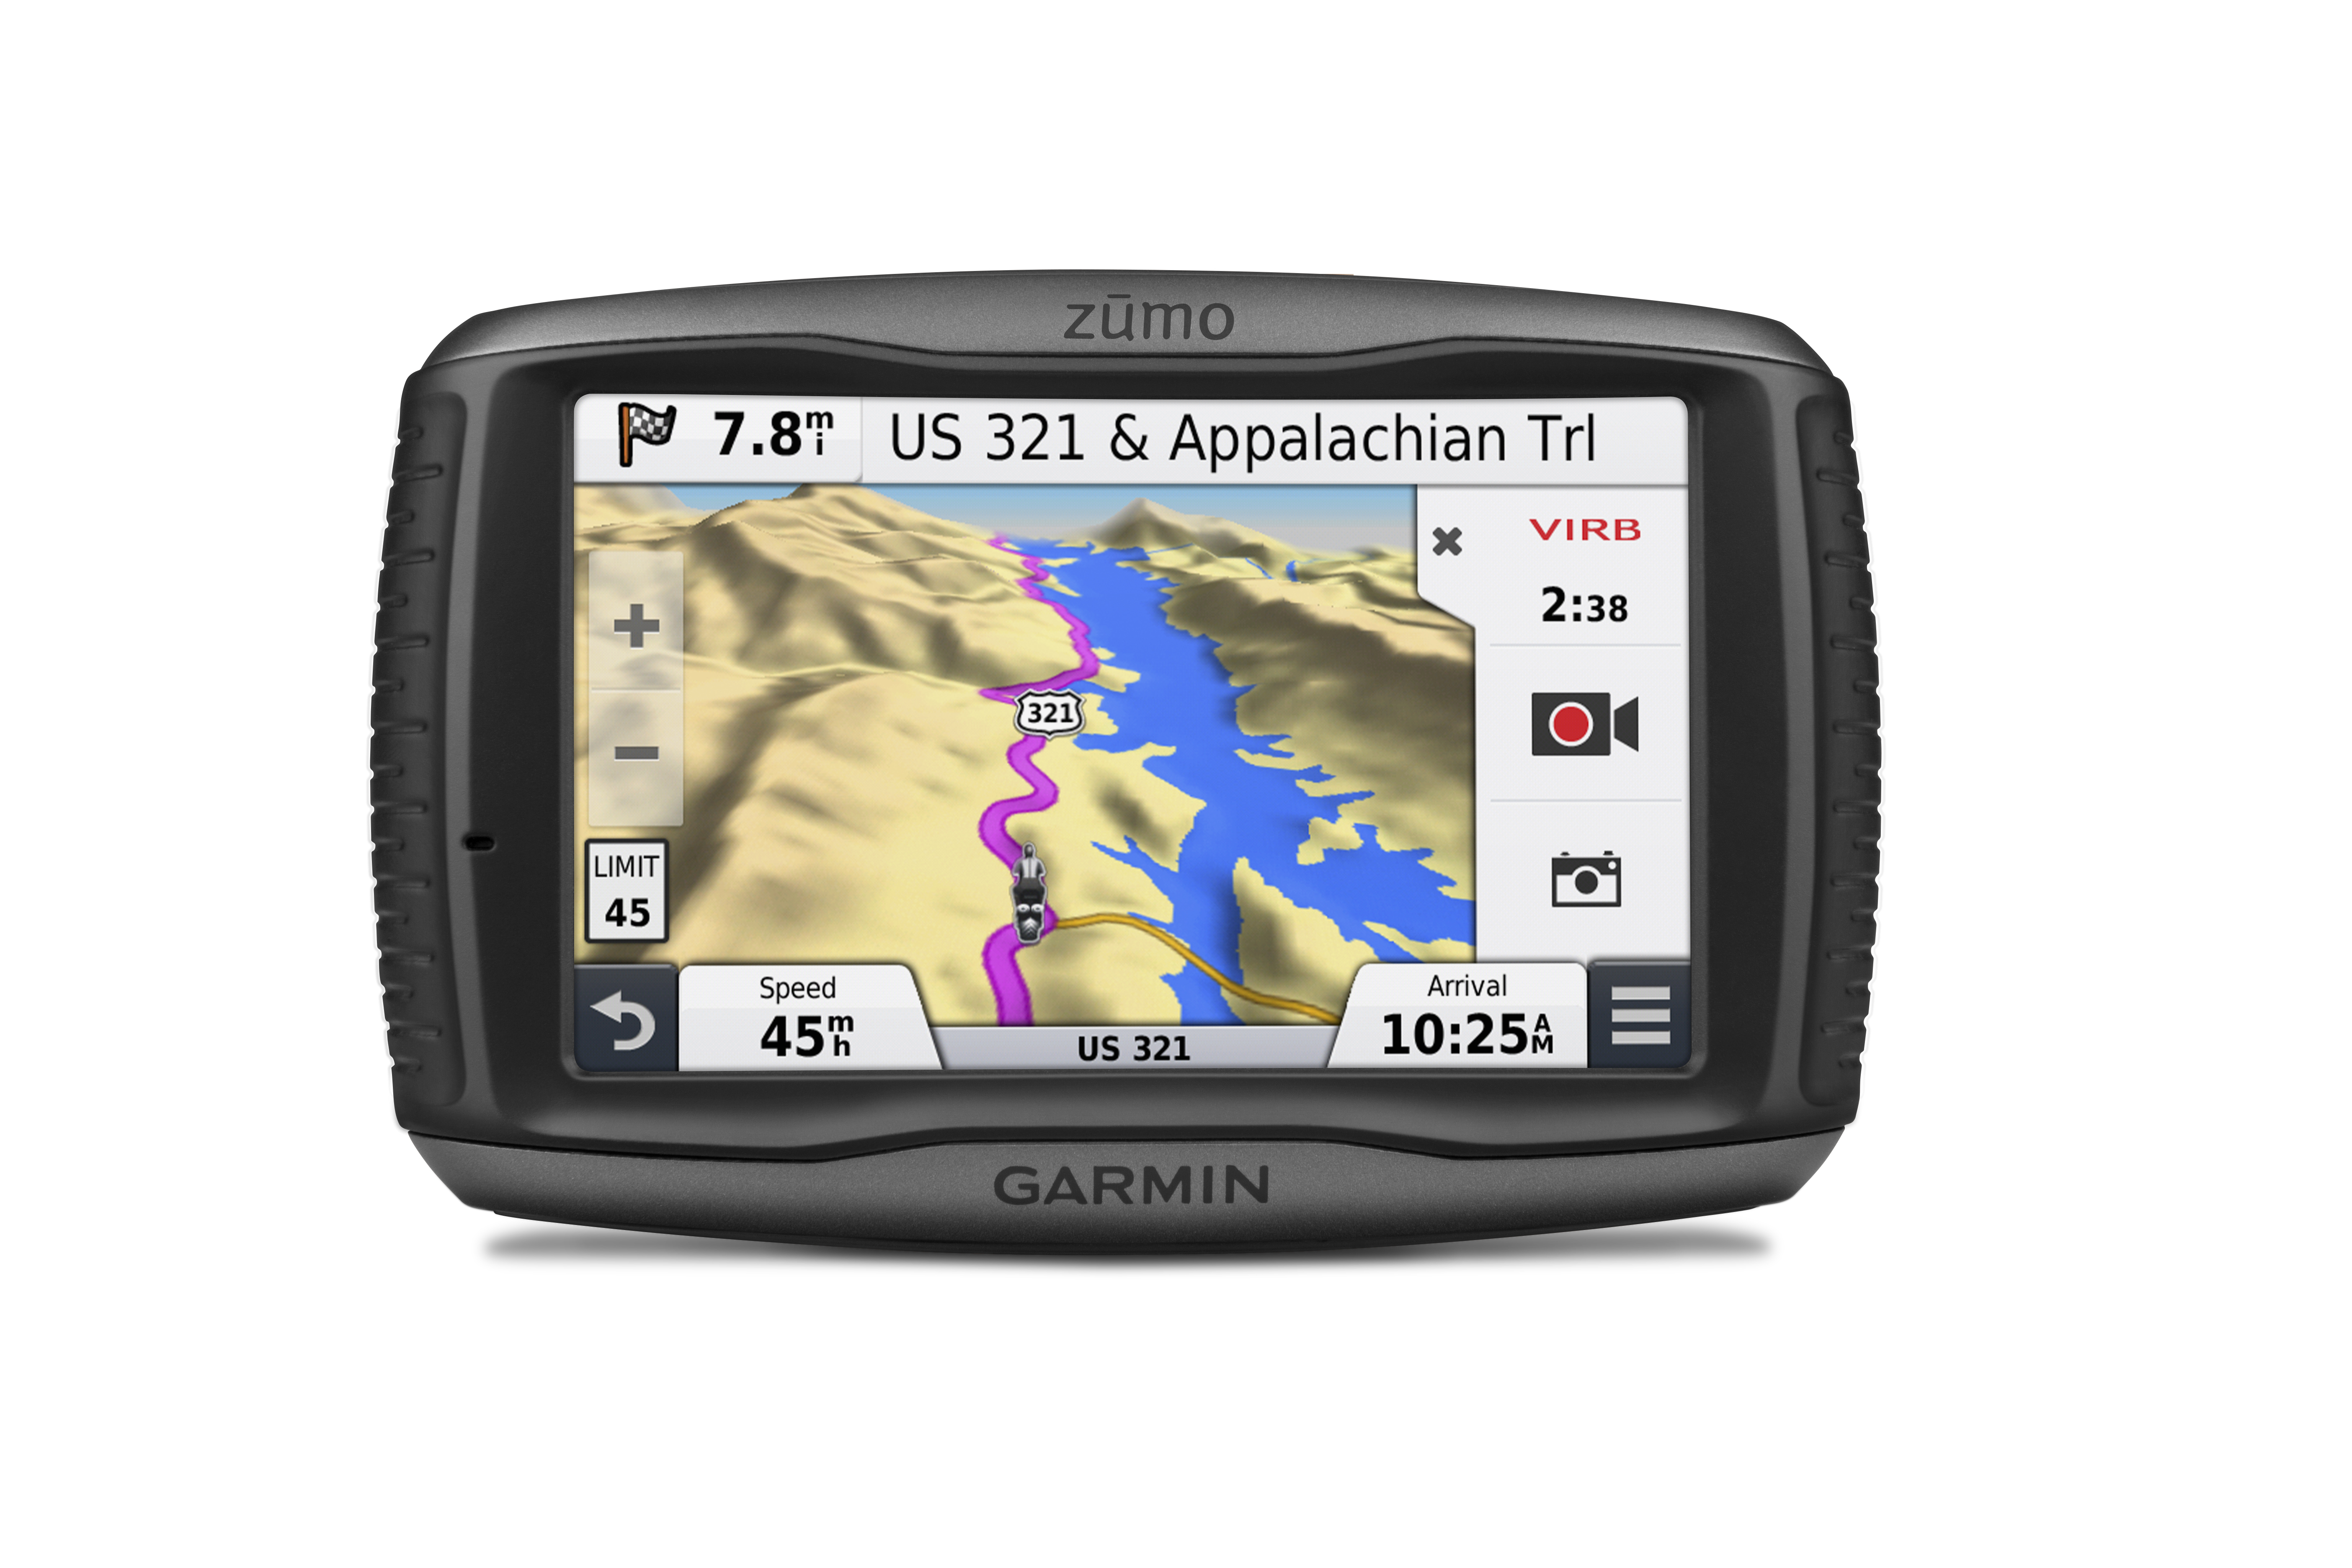 garmin gps with lifetime map updates with Zumo 590lm Motorcycle Gps on Tomtom Map Update Garmin Map Update Services as well Tomtom Via 1515m Review Gps Navigator With Free Lifetime Maps 5 Inch Touchscreen also Cheap Gps Deals Tomtom Garmin in addition Garmin Drivesmart 61 Europe Lmt D Review together with Tomtom Via 1605tm Review.